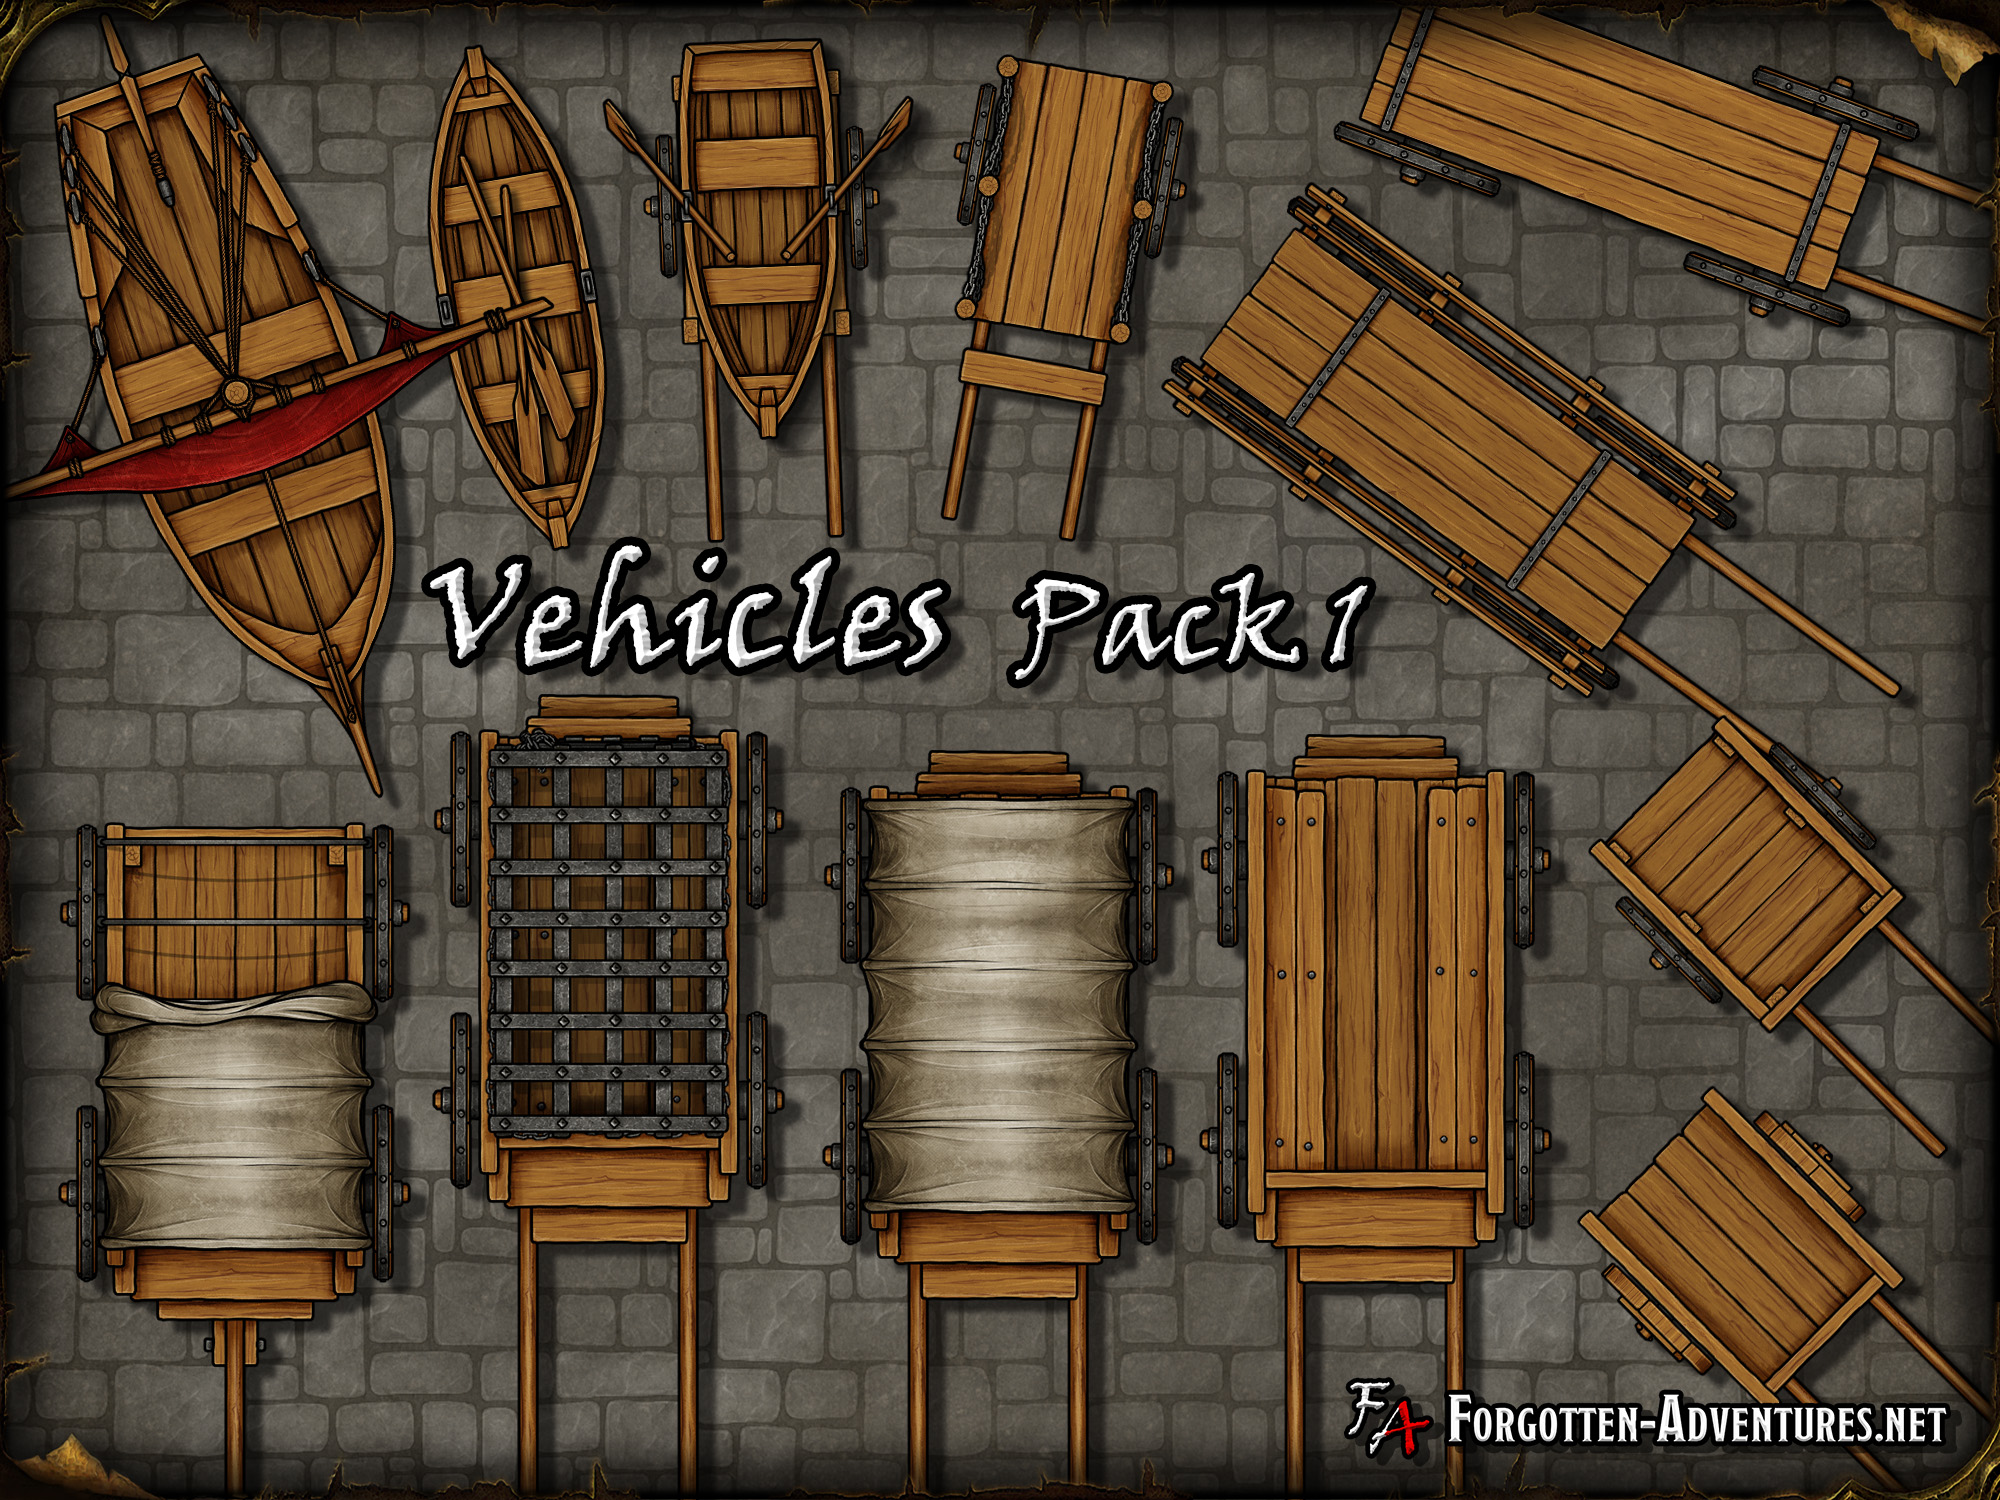 Vehicles-Pack-1.jpg?i=634261562